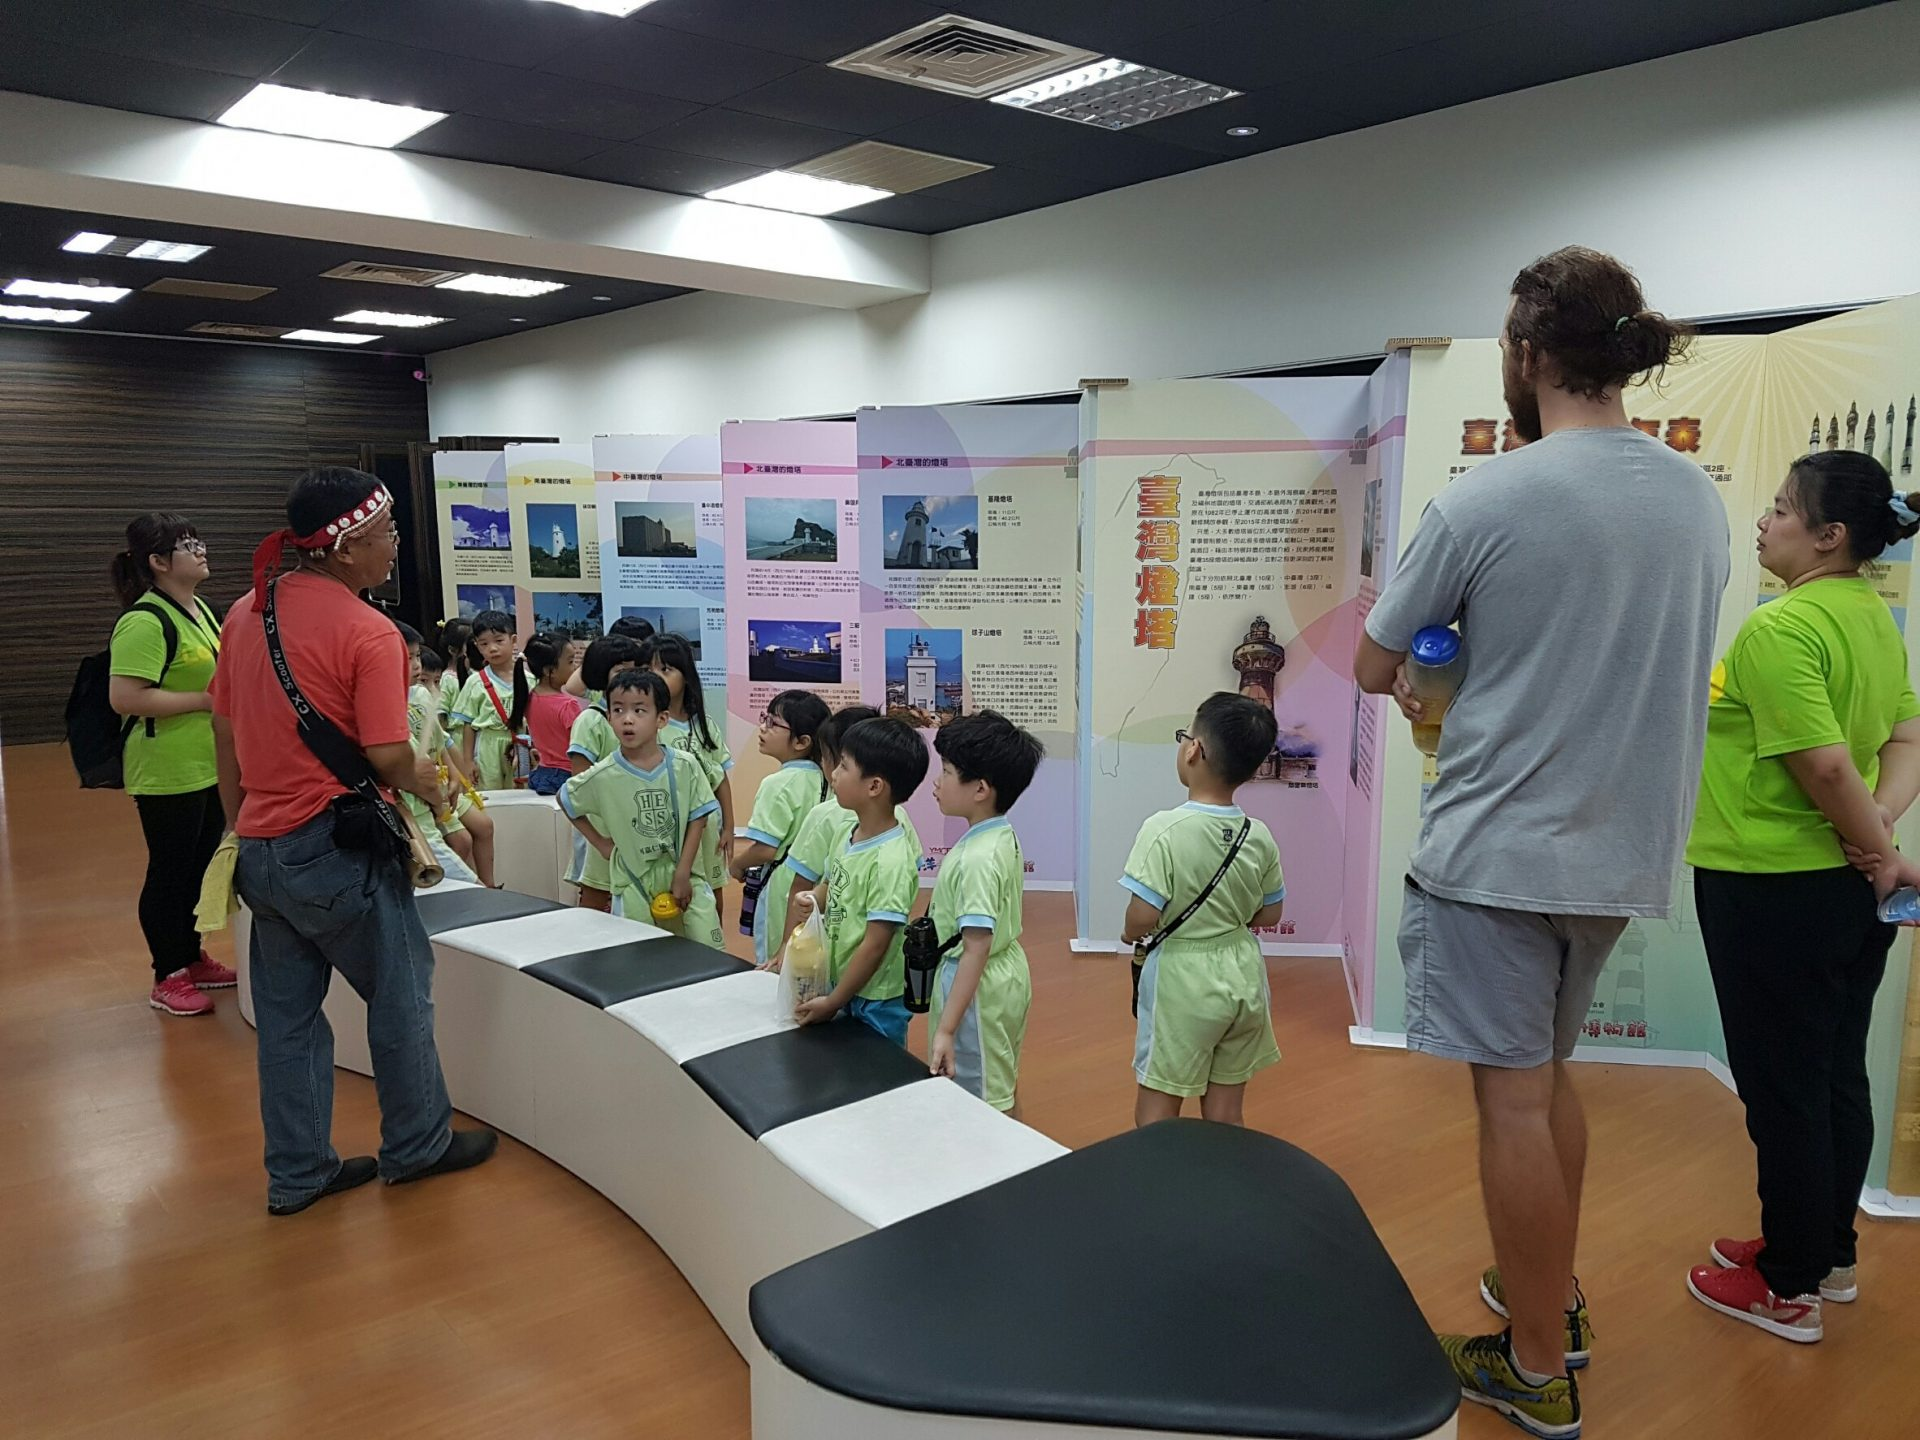 """Yang Ming Oceanic Culture and Art Museum is sponsored by the Yang Ming Cultural Foundation to conduct a cultural activity dubbed """"Museum-on-the-Go"""" to display the beautiful photos of Taiwan lighthouses in various places across Taiwan. (Image: Courtesy of Yang Ming Oceanic Culture and Art Museum)"""